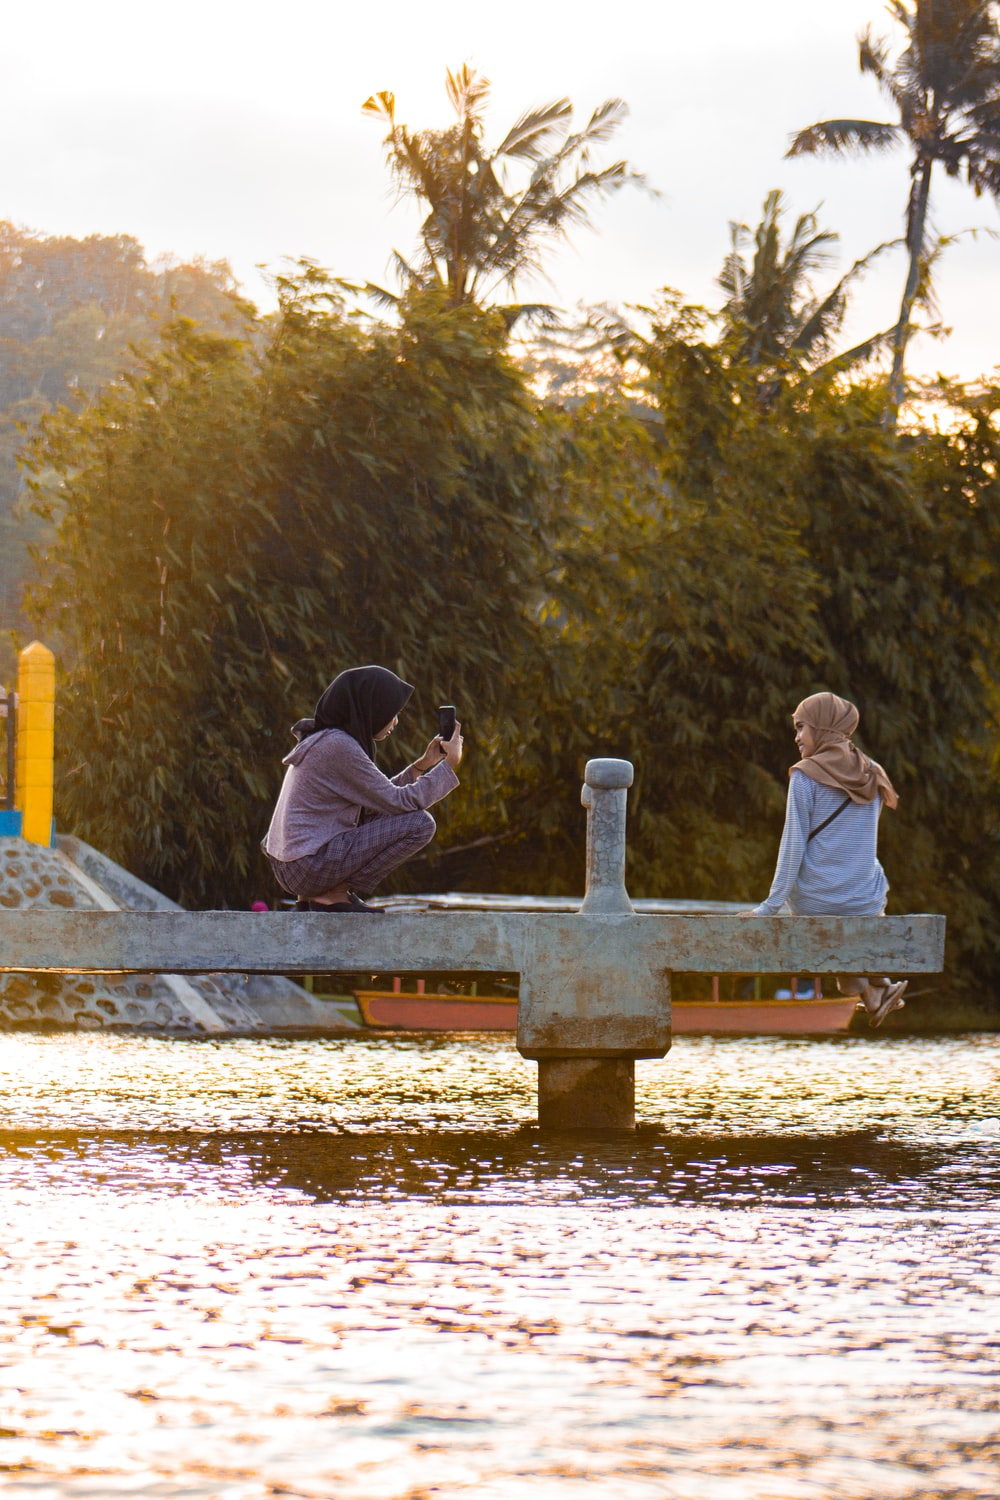 man and woman sitting on bench near body of water during daytime